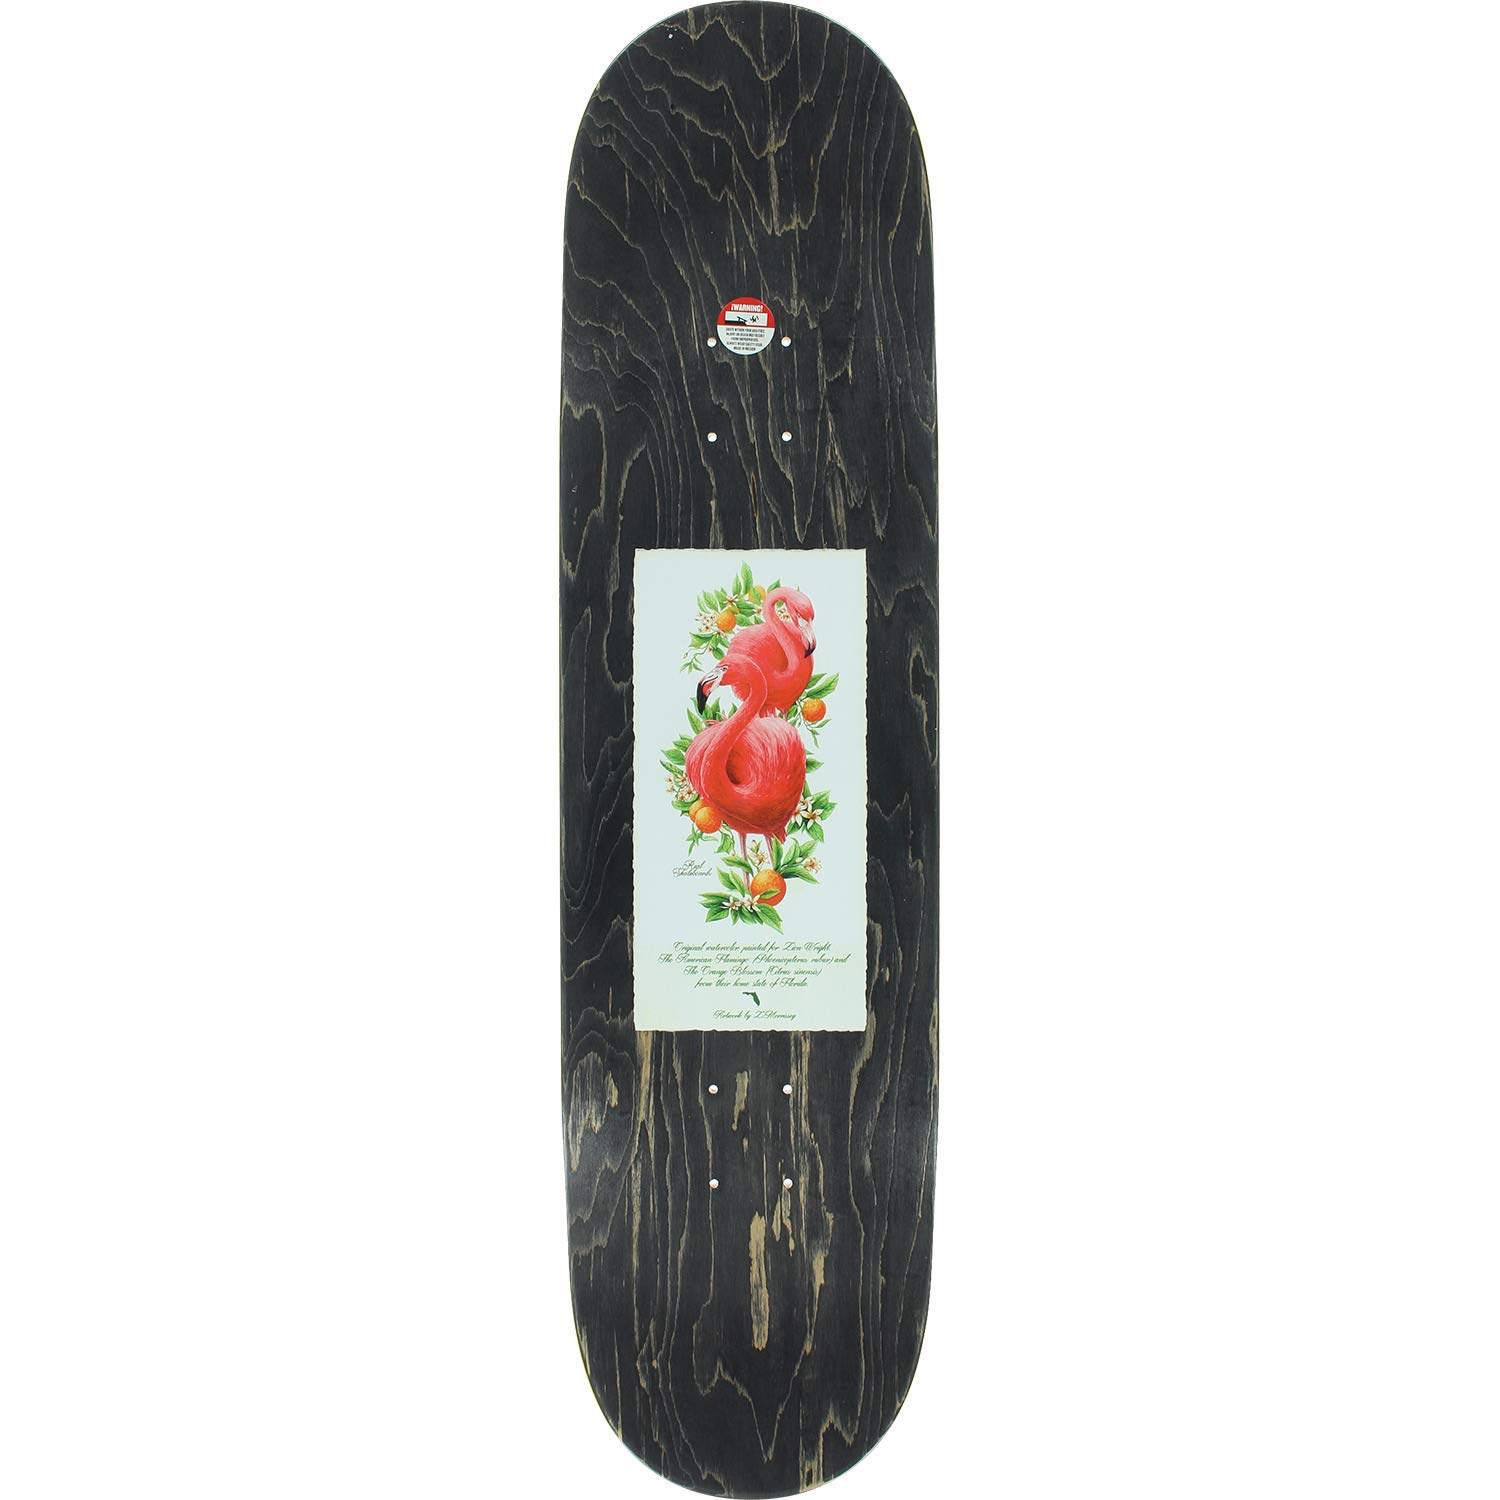 02389198 Real Skateboards Zion Wright Natural Domain II Skateboard Deck - 8.25